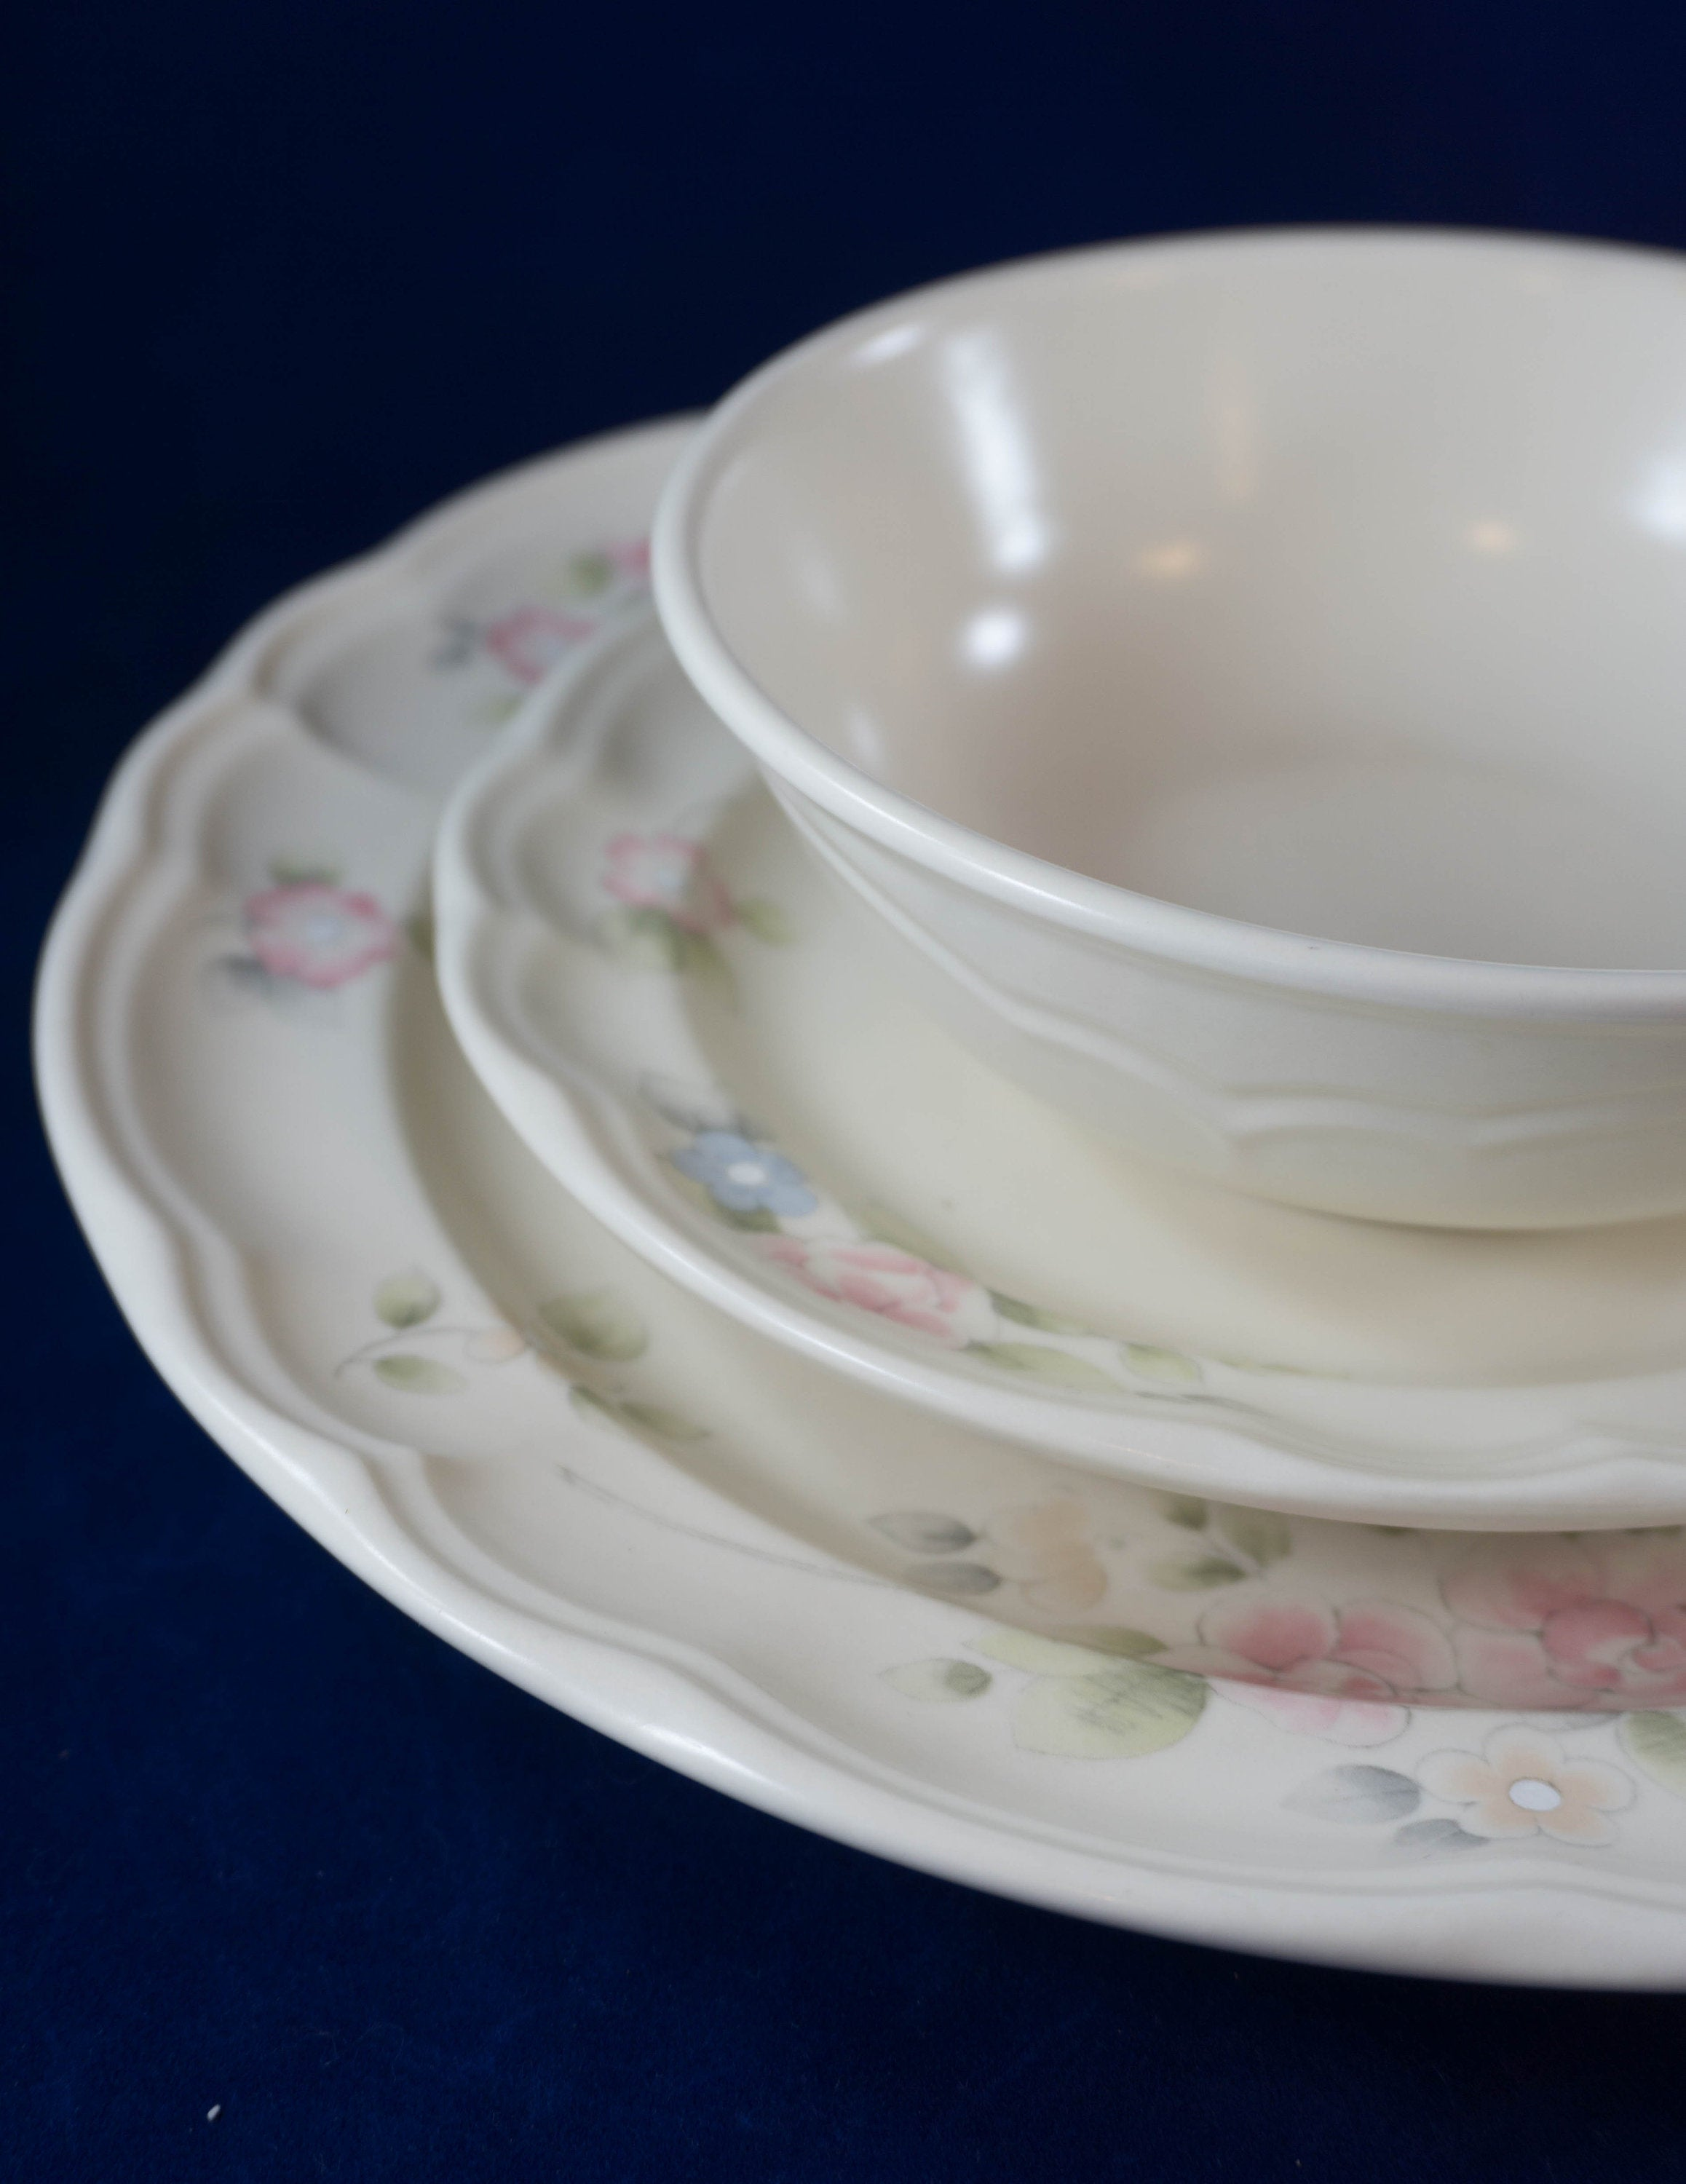 Five Piece Place Setting Vintage Discontinued Plate Tea Rose by PFALTZGRAFF